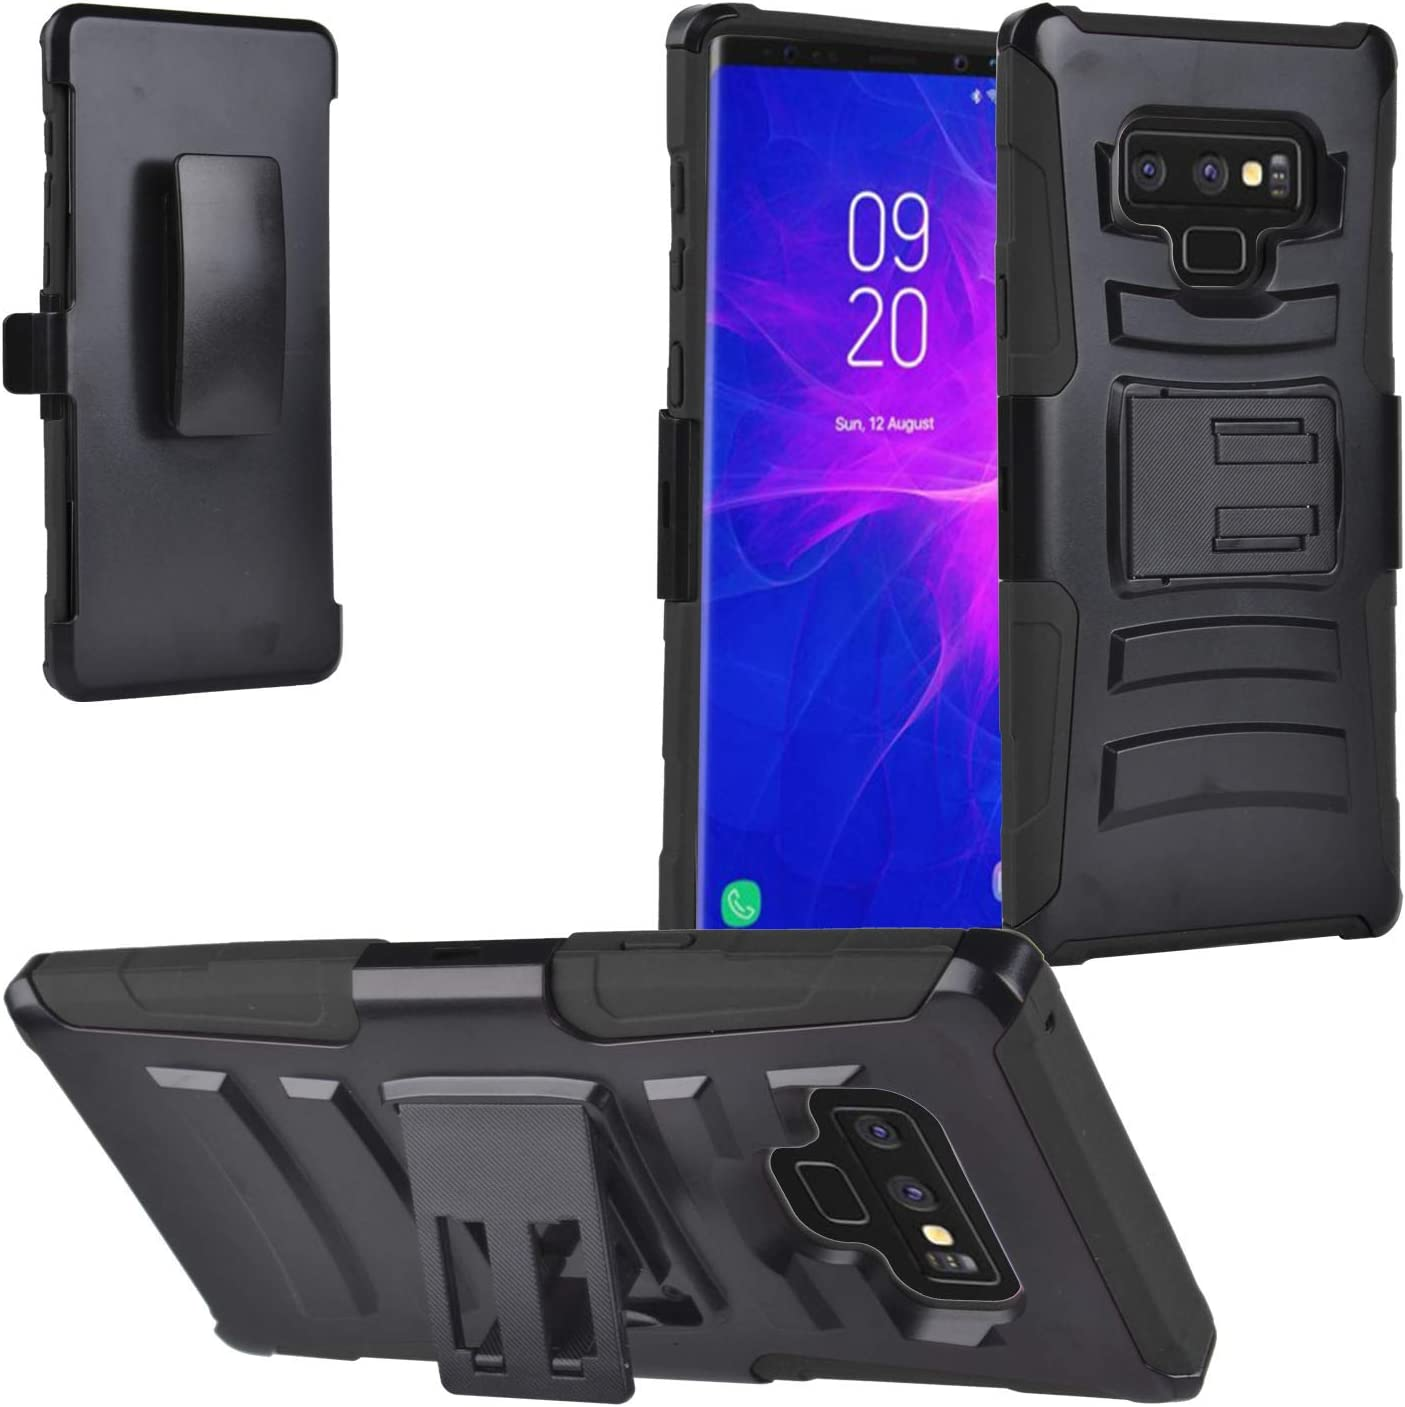 Eaglecell - Compatible with Samsung Galaxy Note 9 SM-N960 Note9 - Hybrid Phone Case w/Stand/Belt Clip Holster + Tempered Glass Screen Protector - CV1 Black